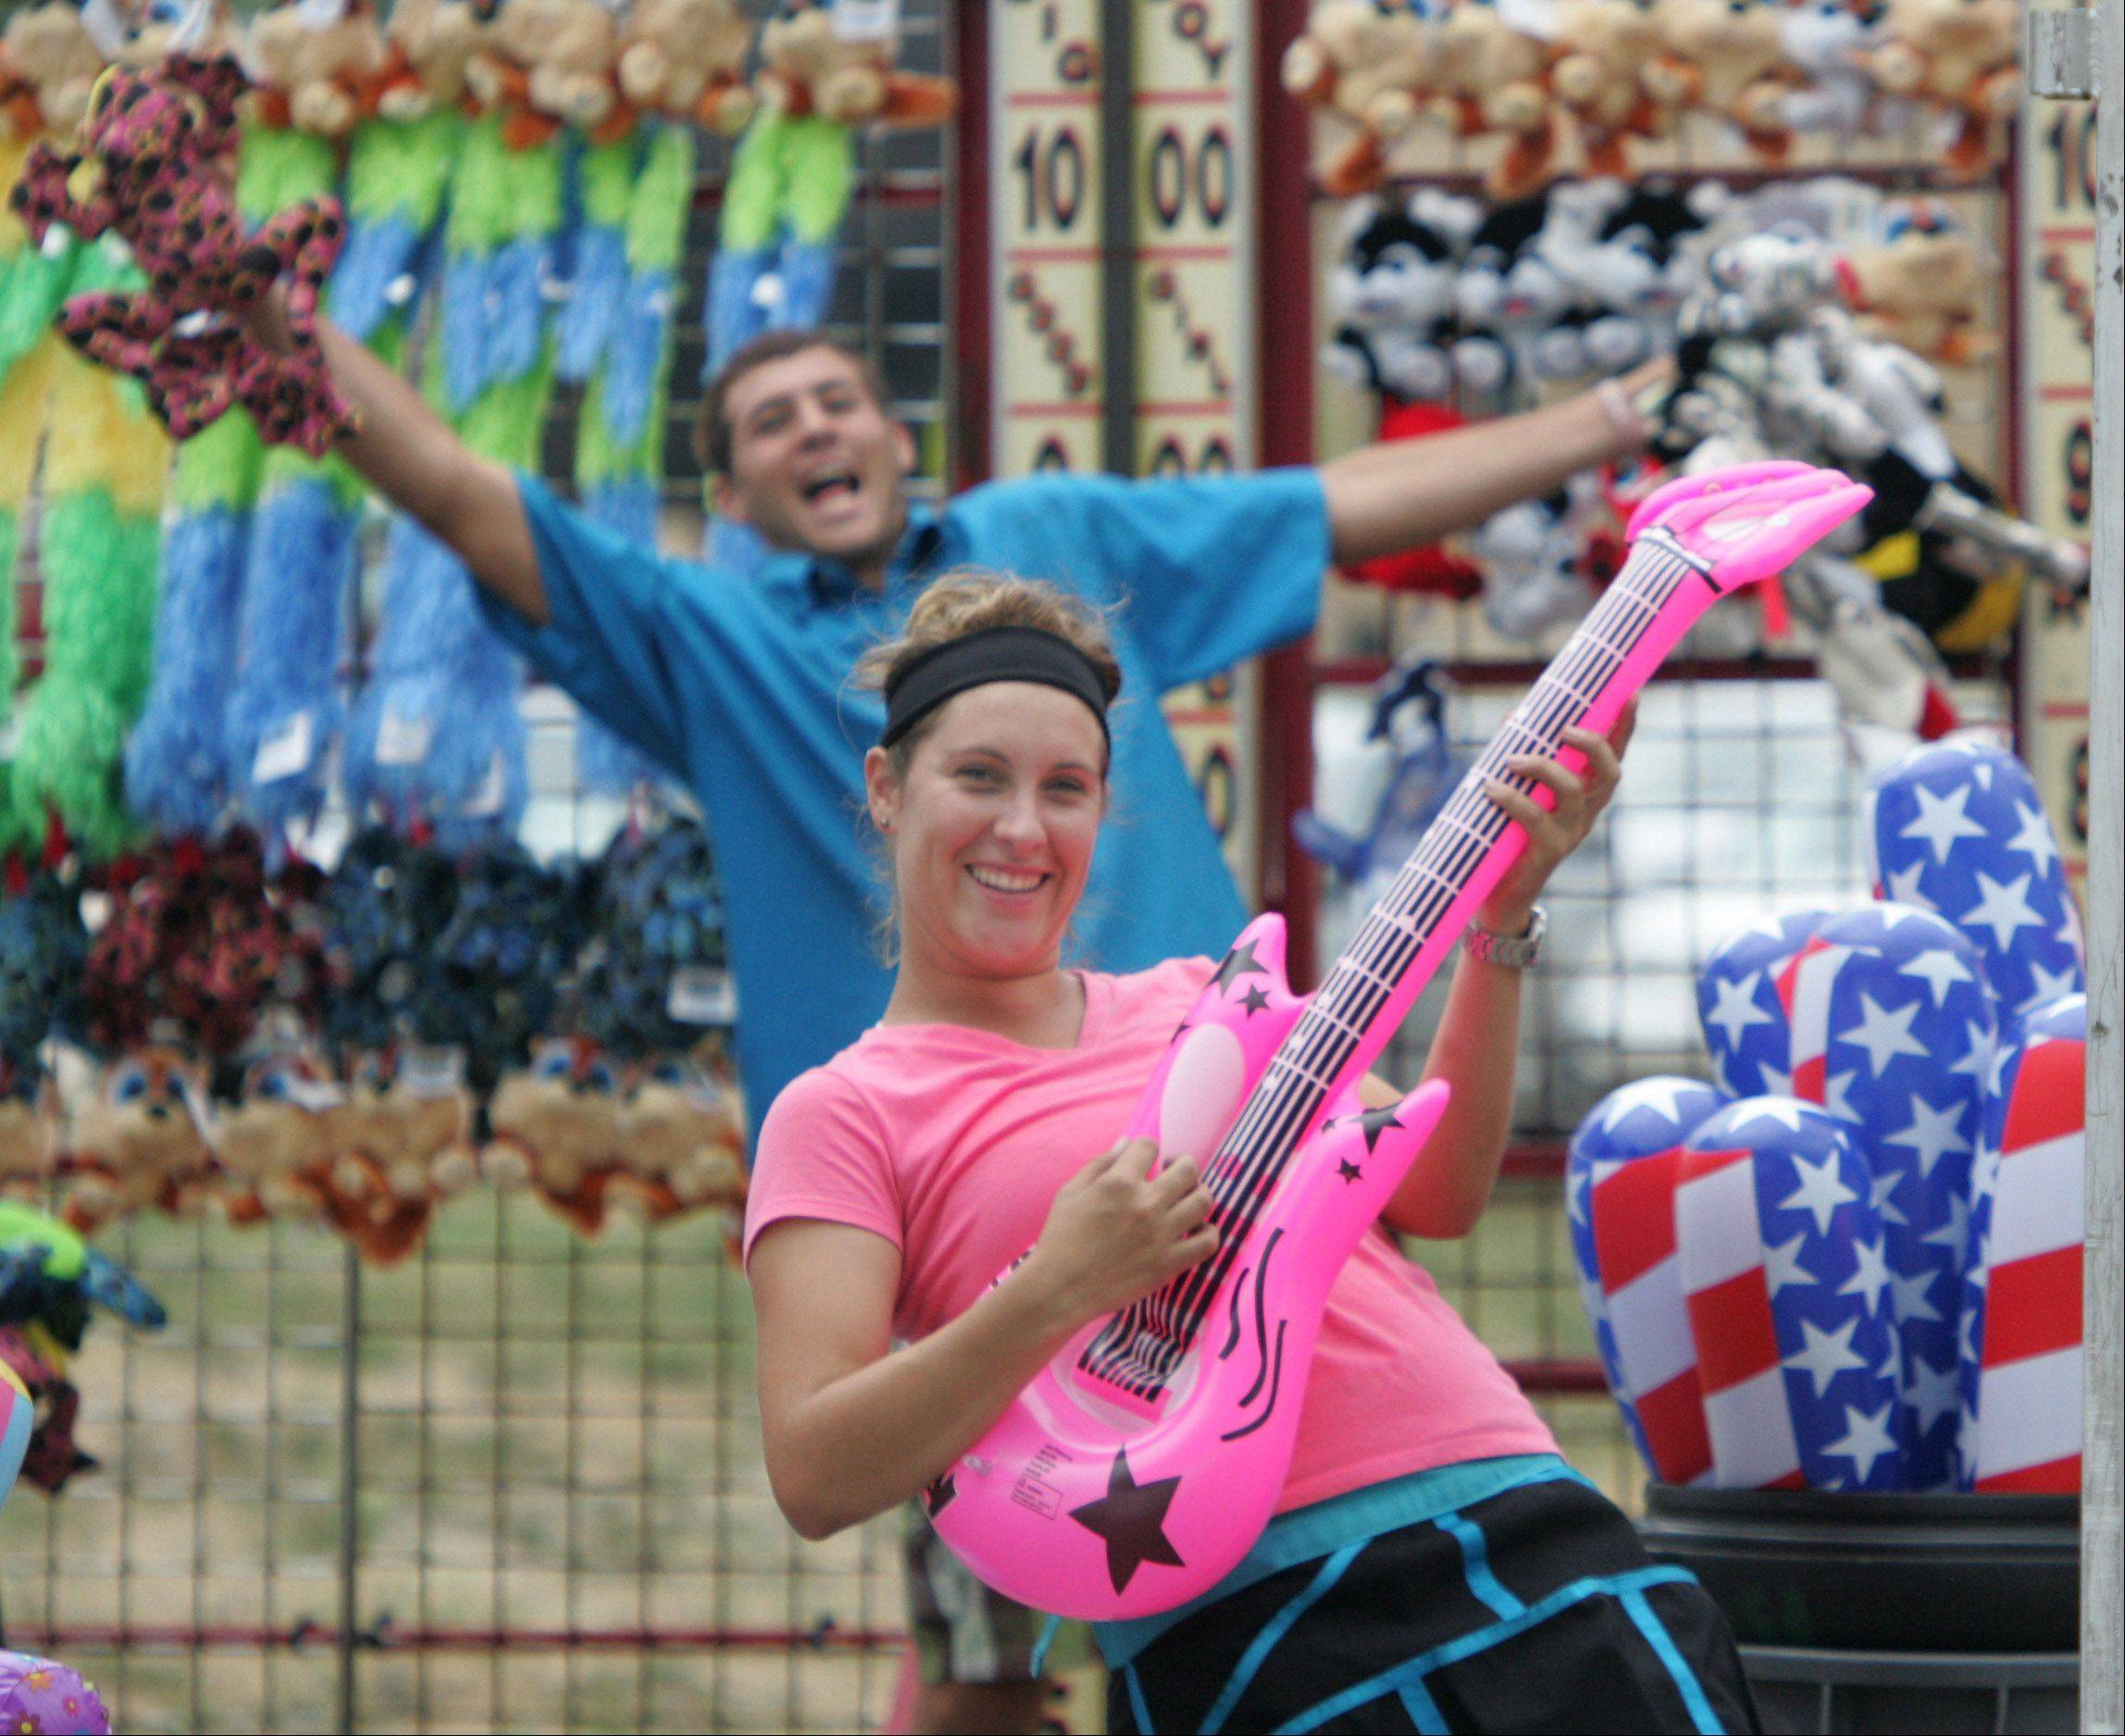 Lizanda Van Rooyen, of Alpine Amusement Co., plays air guitar while J.B. DuPlooy goofs off behind her as they try to attract customers to the Hammer Slammer game during a previous edition of the Antioch Taste of Summer Fest.